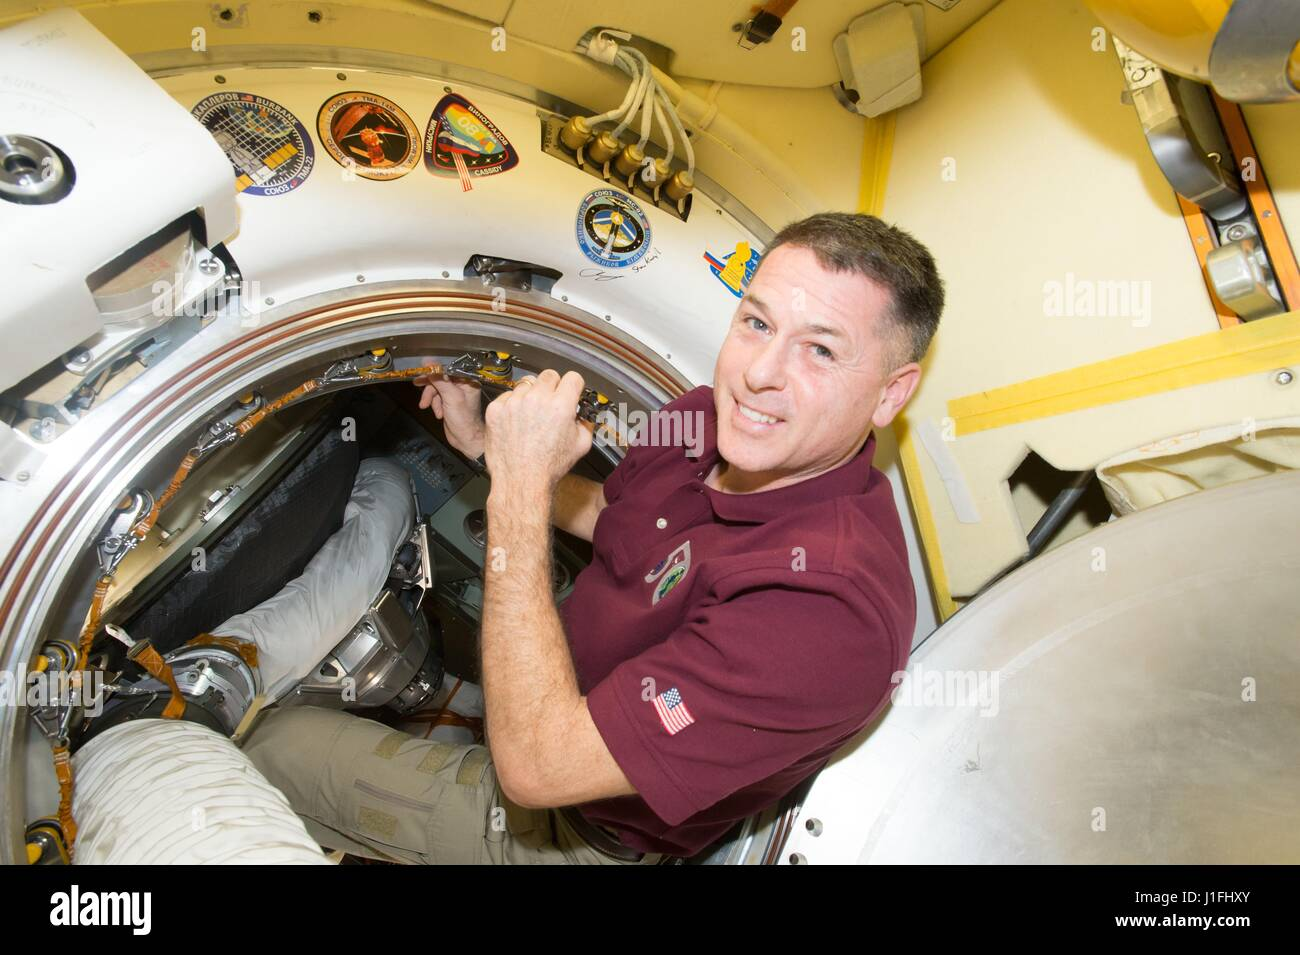 NASA Expedition 50 prime crew member American astronaut Shane Kimbrough signs a bulkhead on the Russian segment - Stock Image